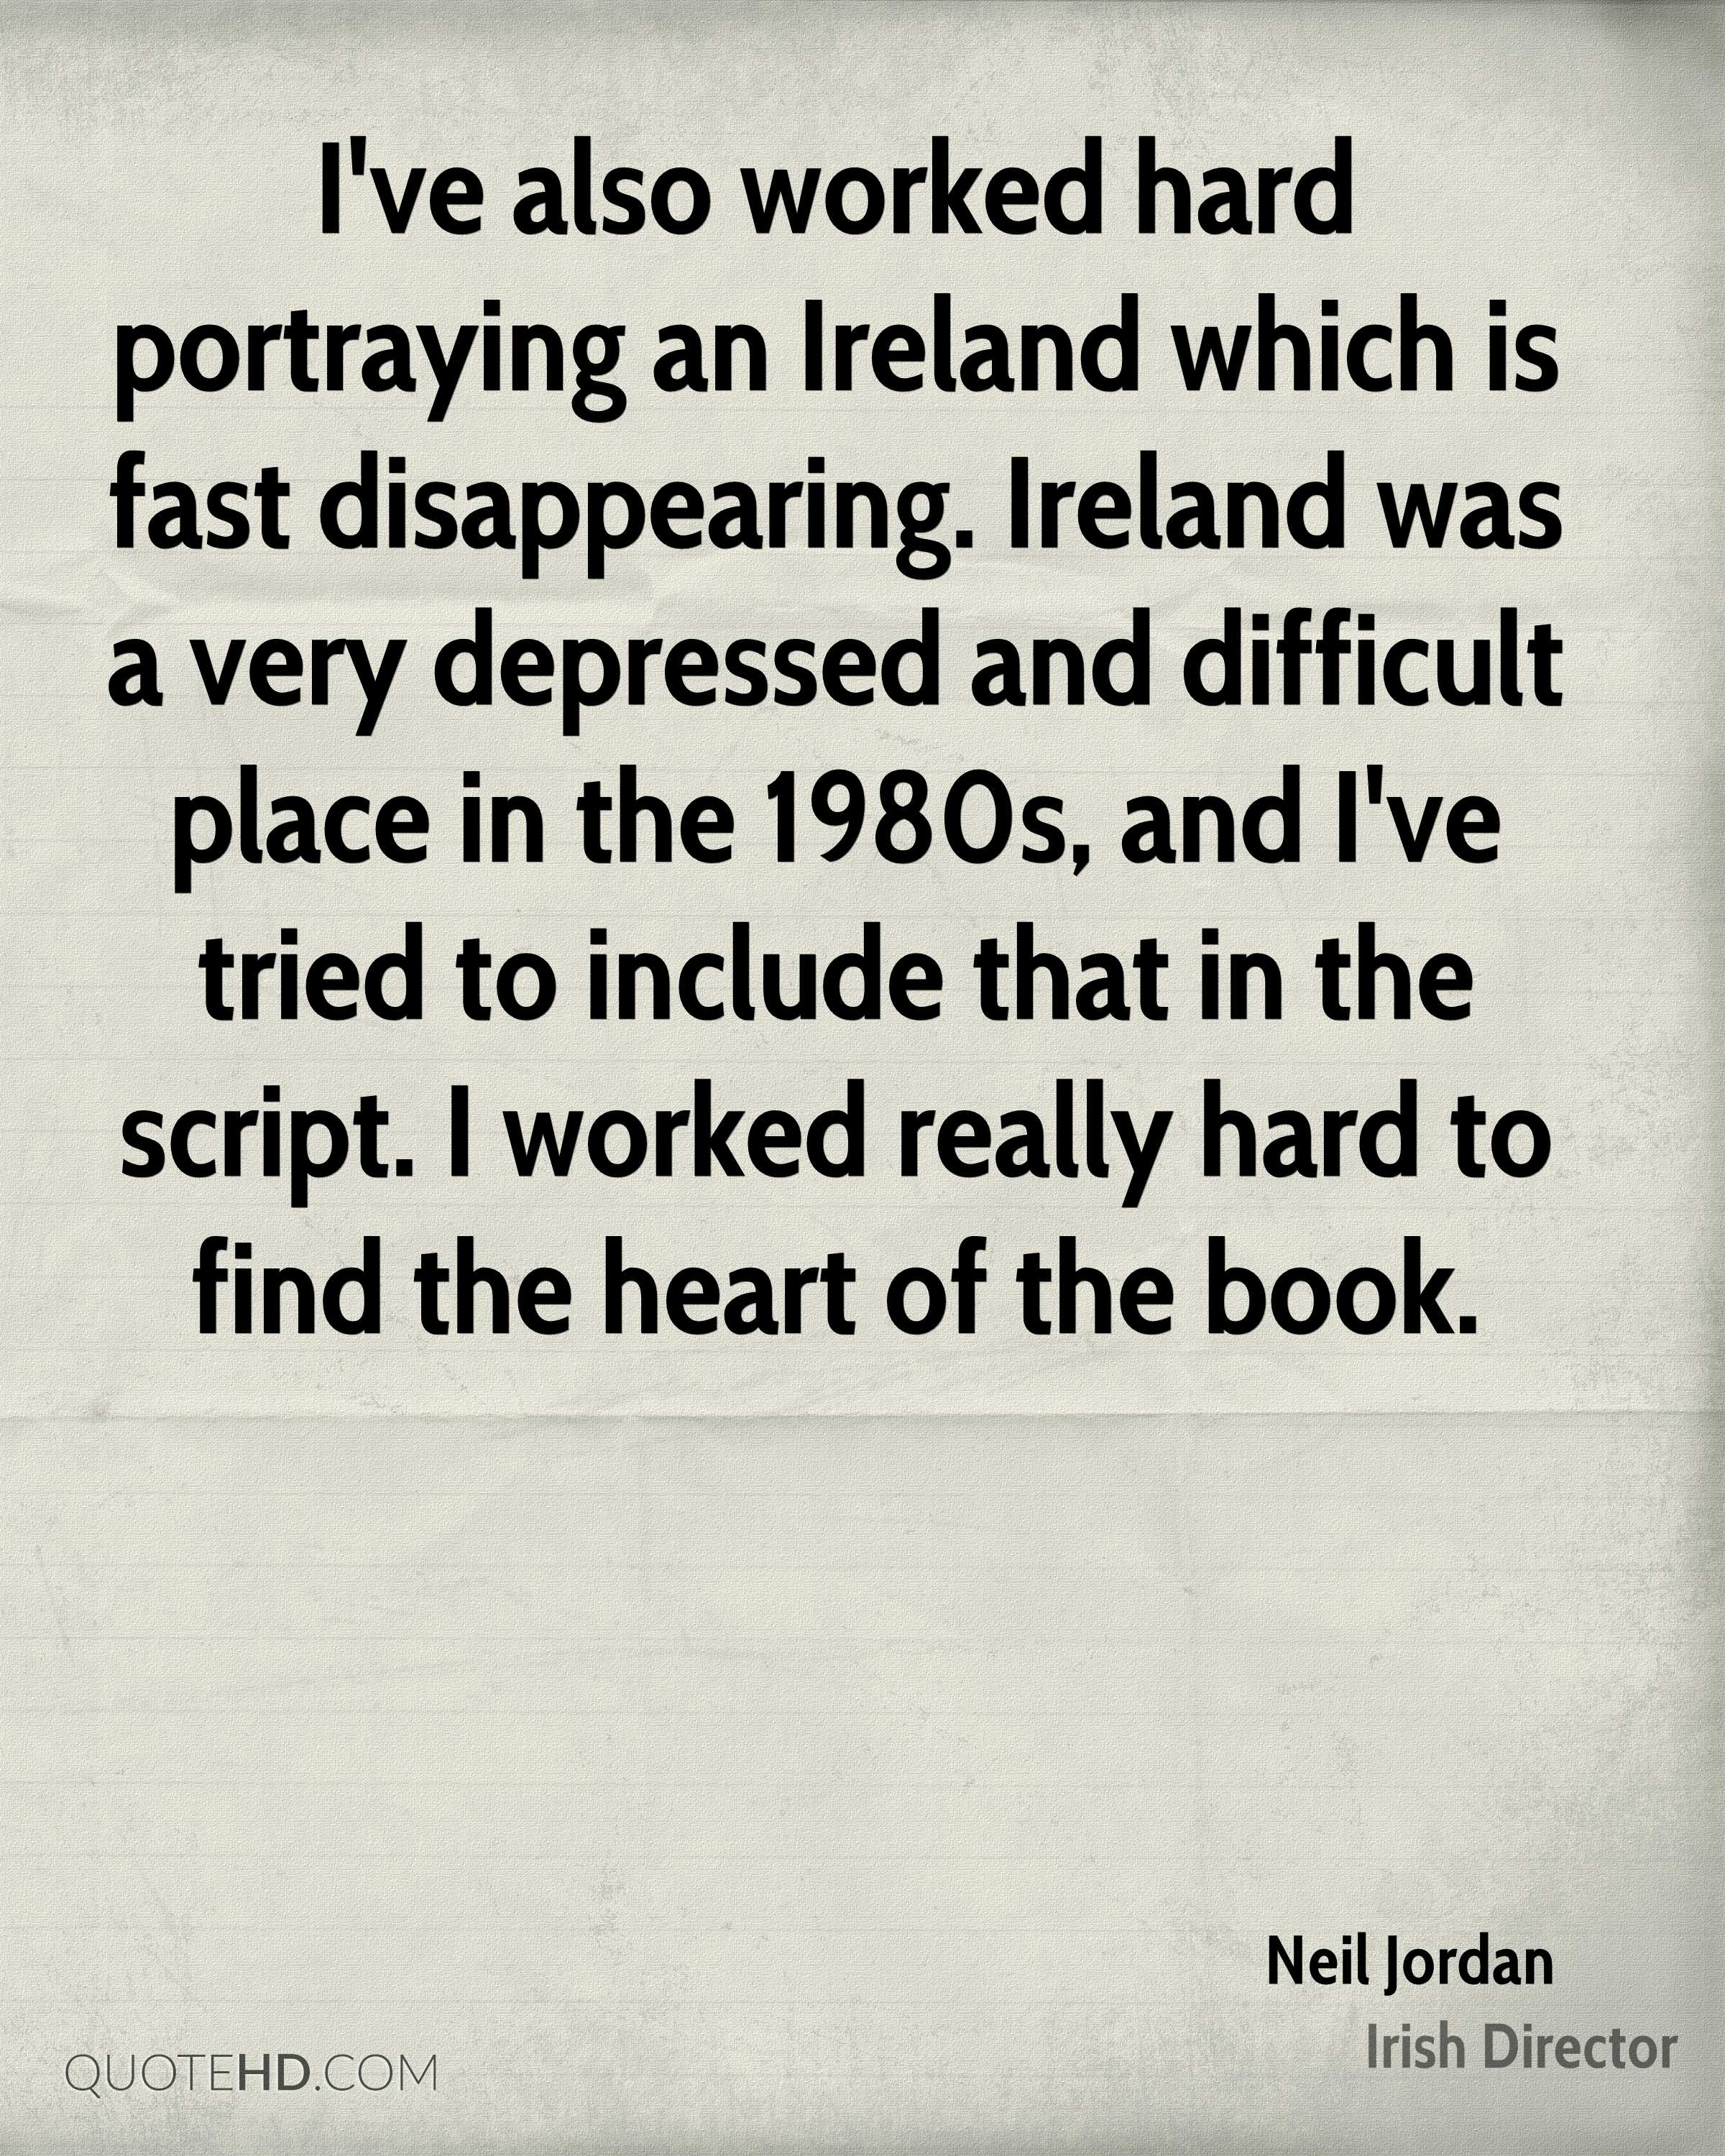 I've also worked hard portraying an Ireland which is fast disappearing. Ireland was a very depressed and difficult place in the 1980s, and I've tried to include that in the script. I worked really hard to find the heart of the book.